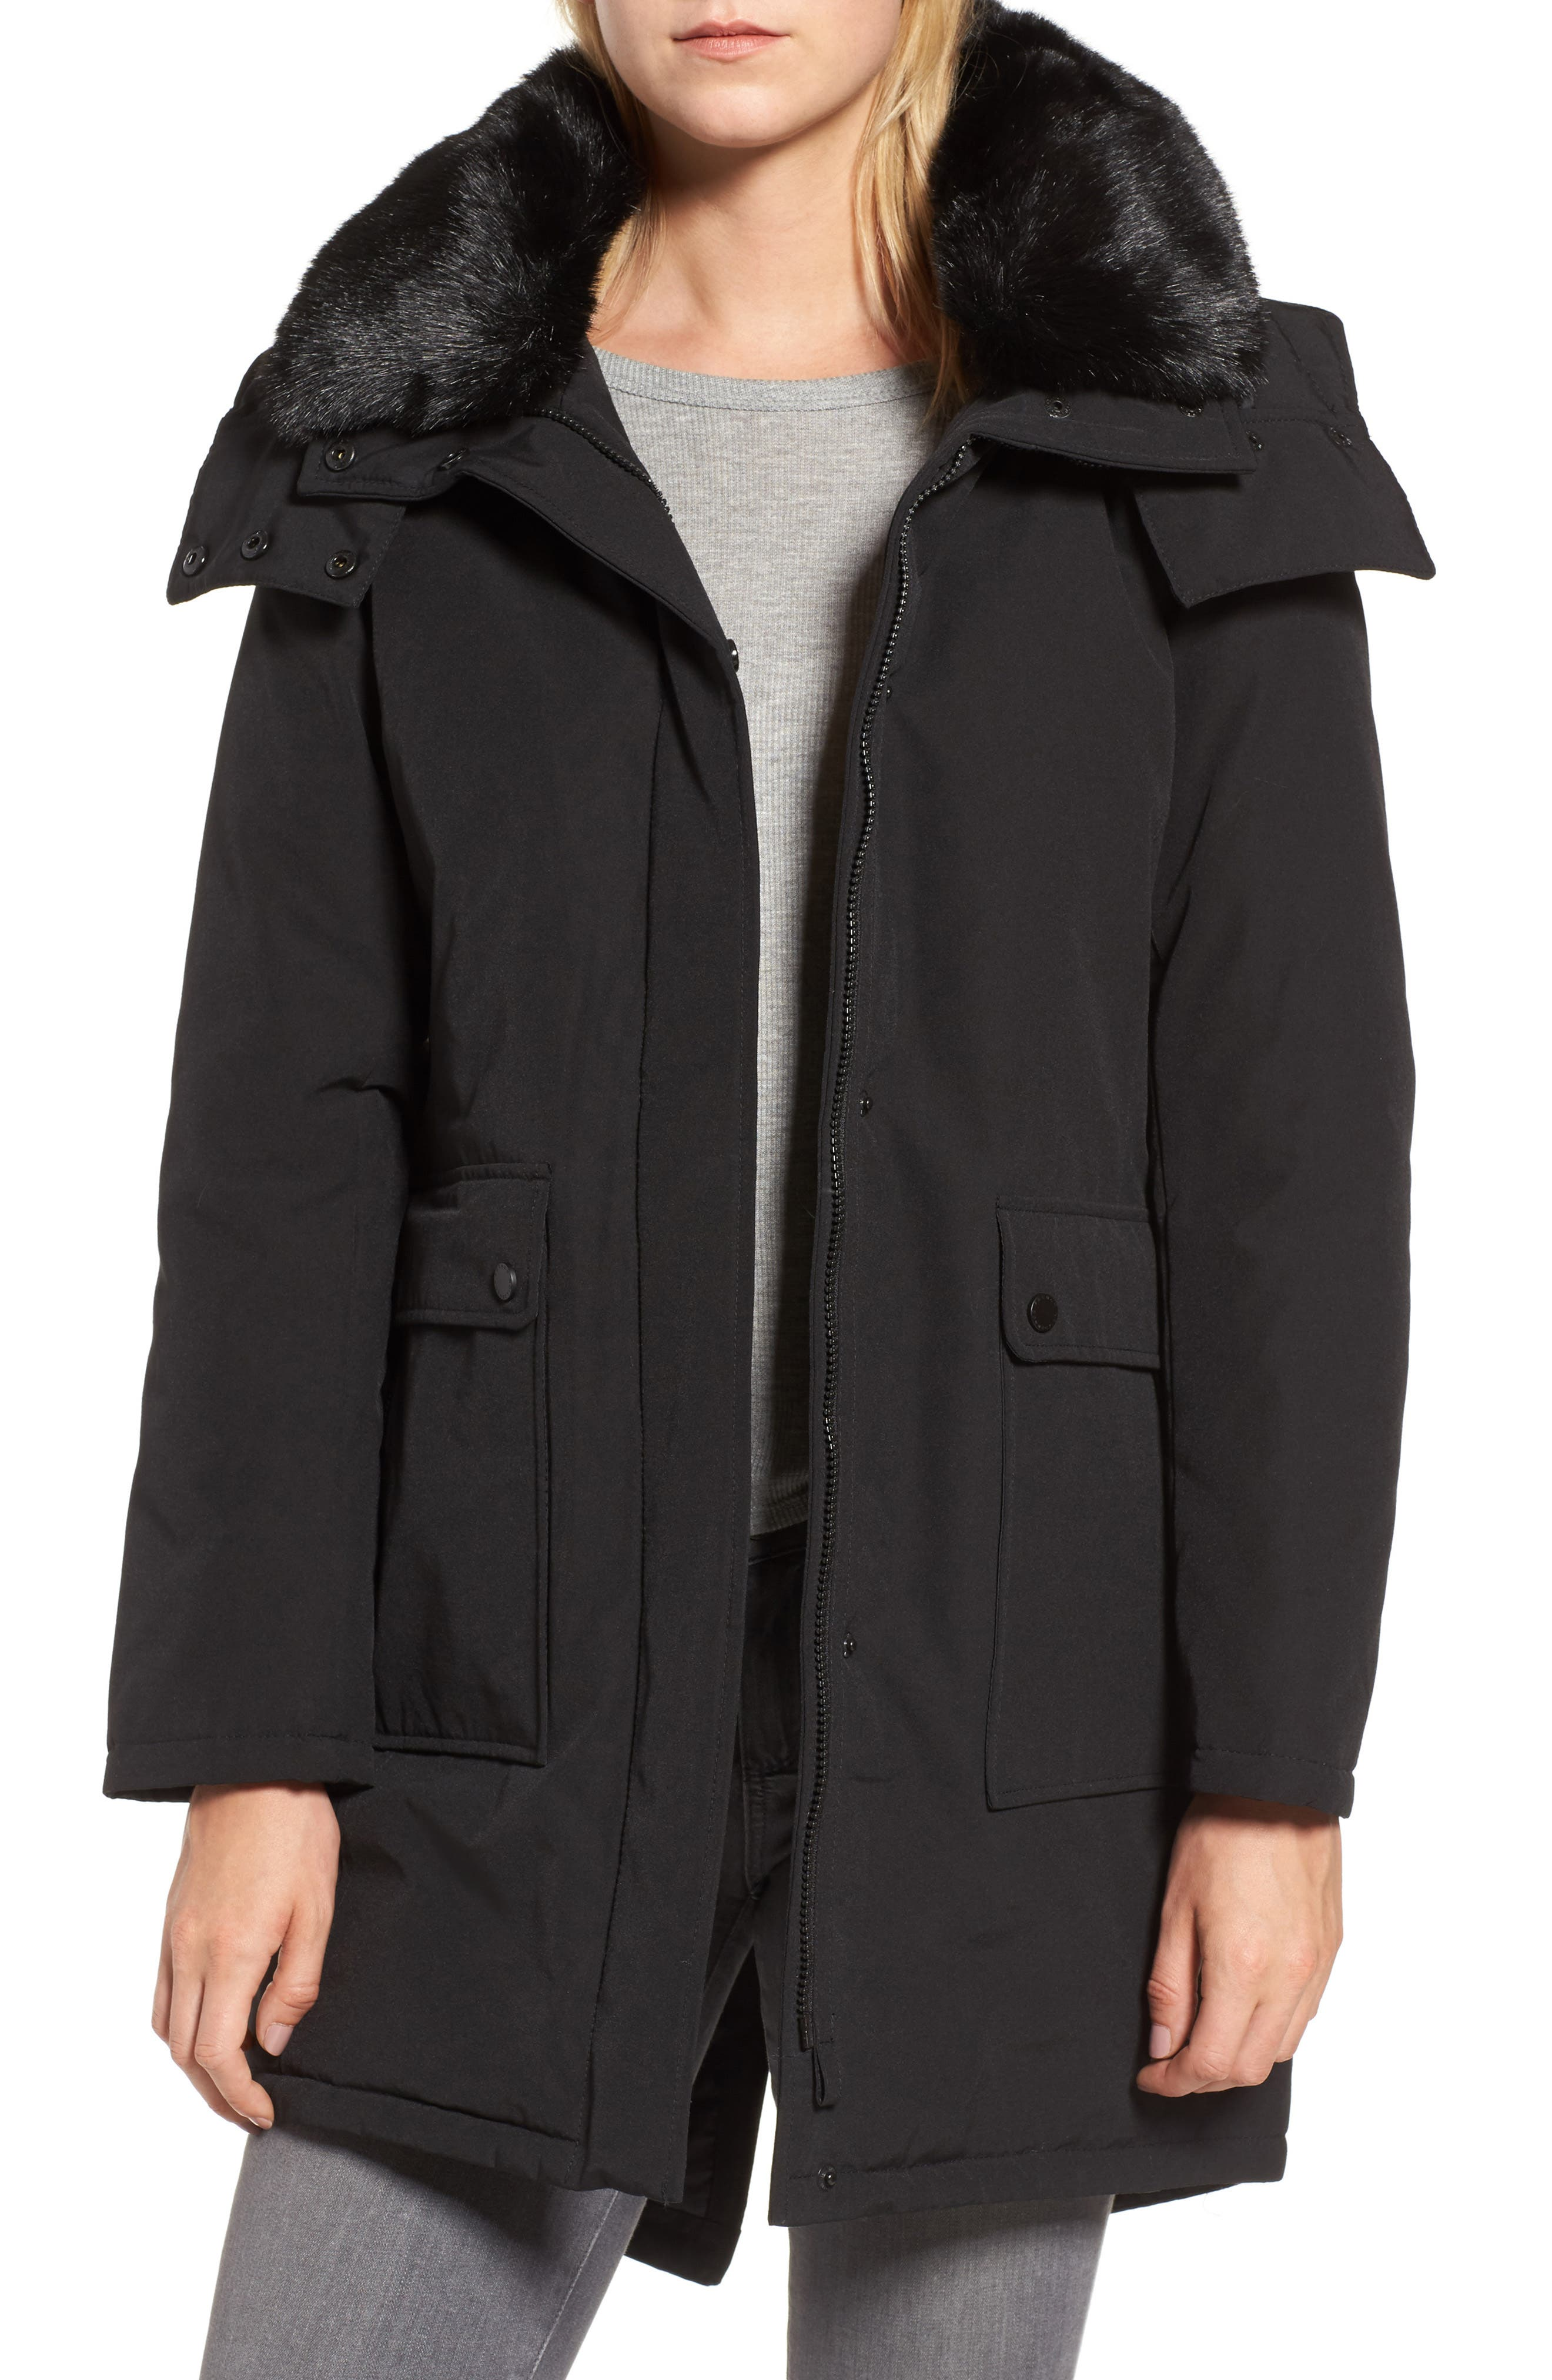 French Connection Hooded Anorak with Detachable Faux Fur Collar